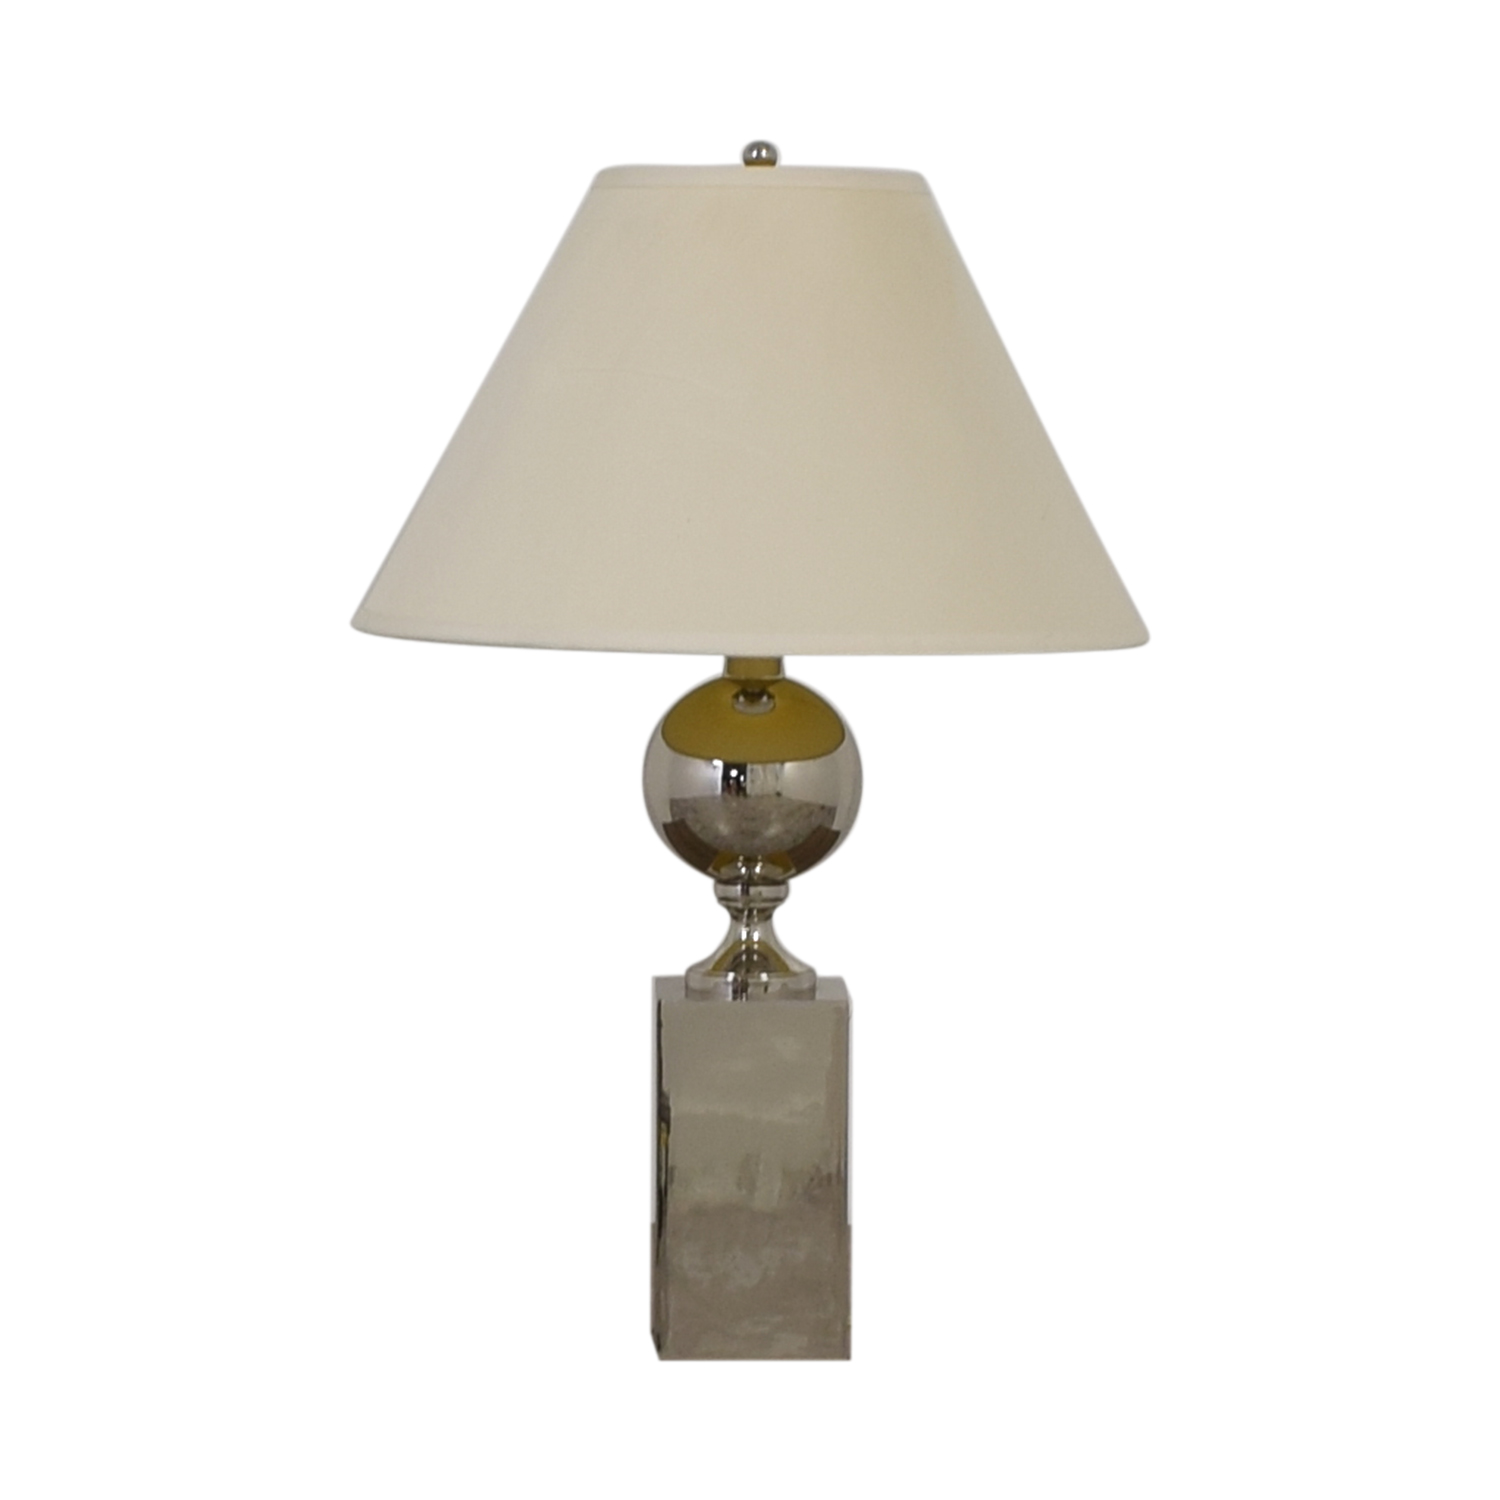 Mitchell Gold + Bob Williams Mitchell Gold + Bob Williams Polished Stainless Large Table Lamp second hand